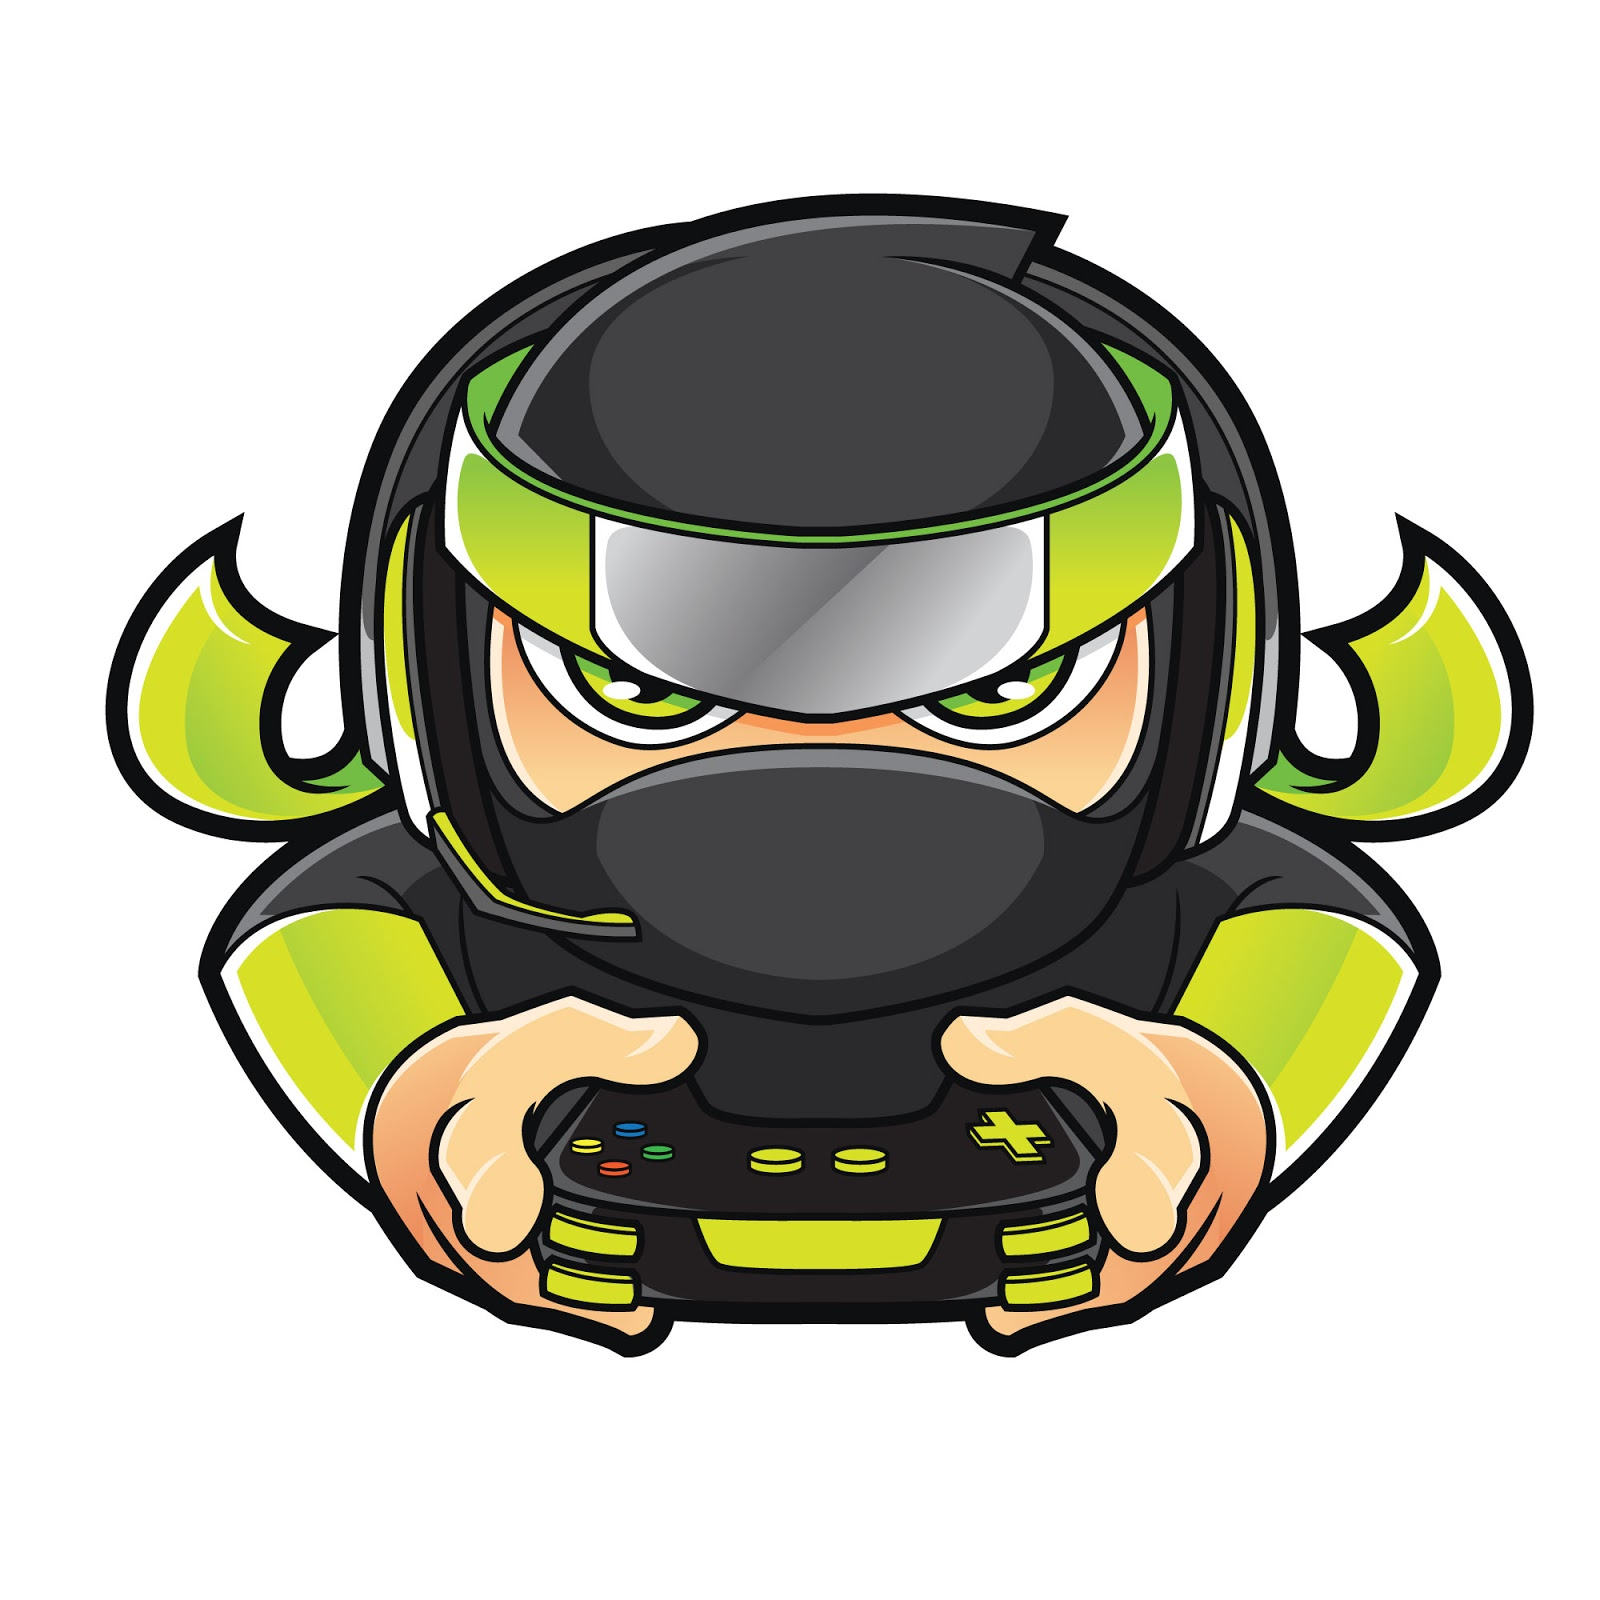 Ninja Gamer Free Download Vector CDR, AI, EPS and PNG Formats